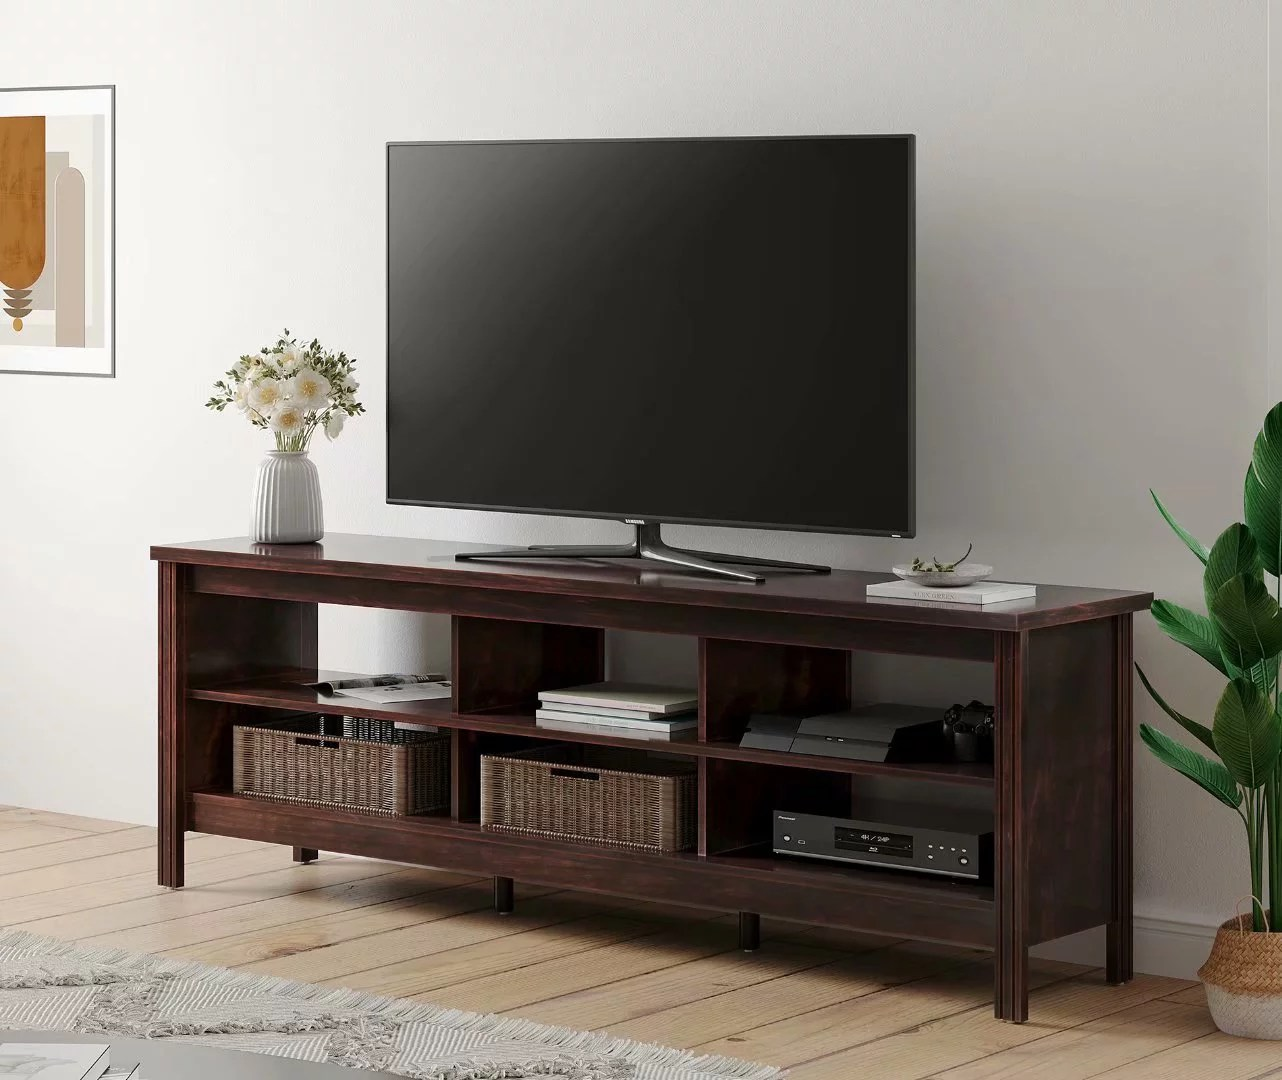 farmhouse tv stand for 75 inch flat screen wood tv console table storage cabinet living room entertainment center brown